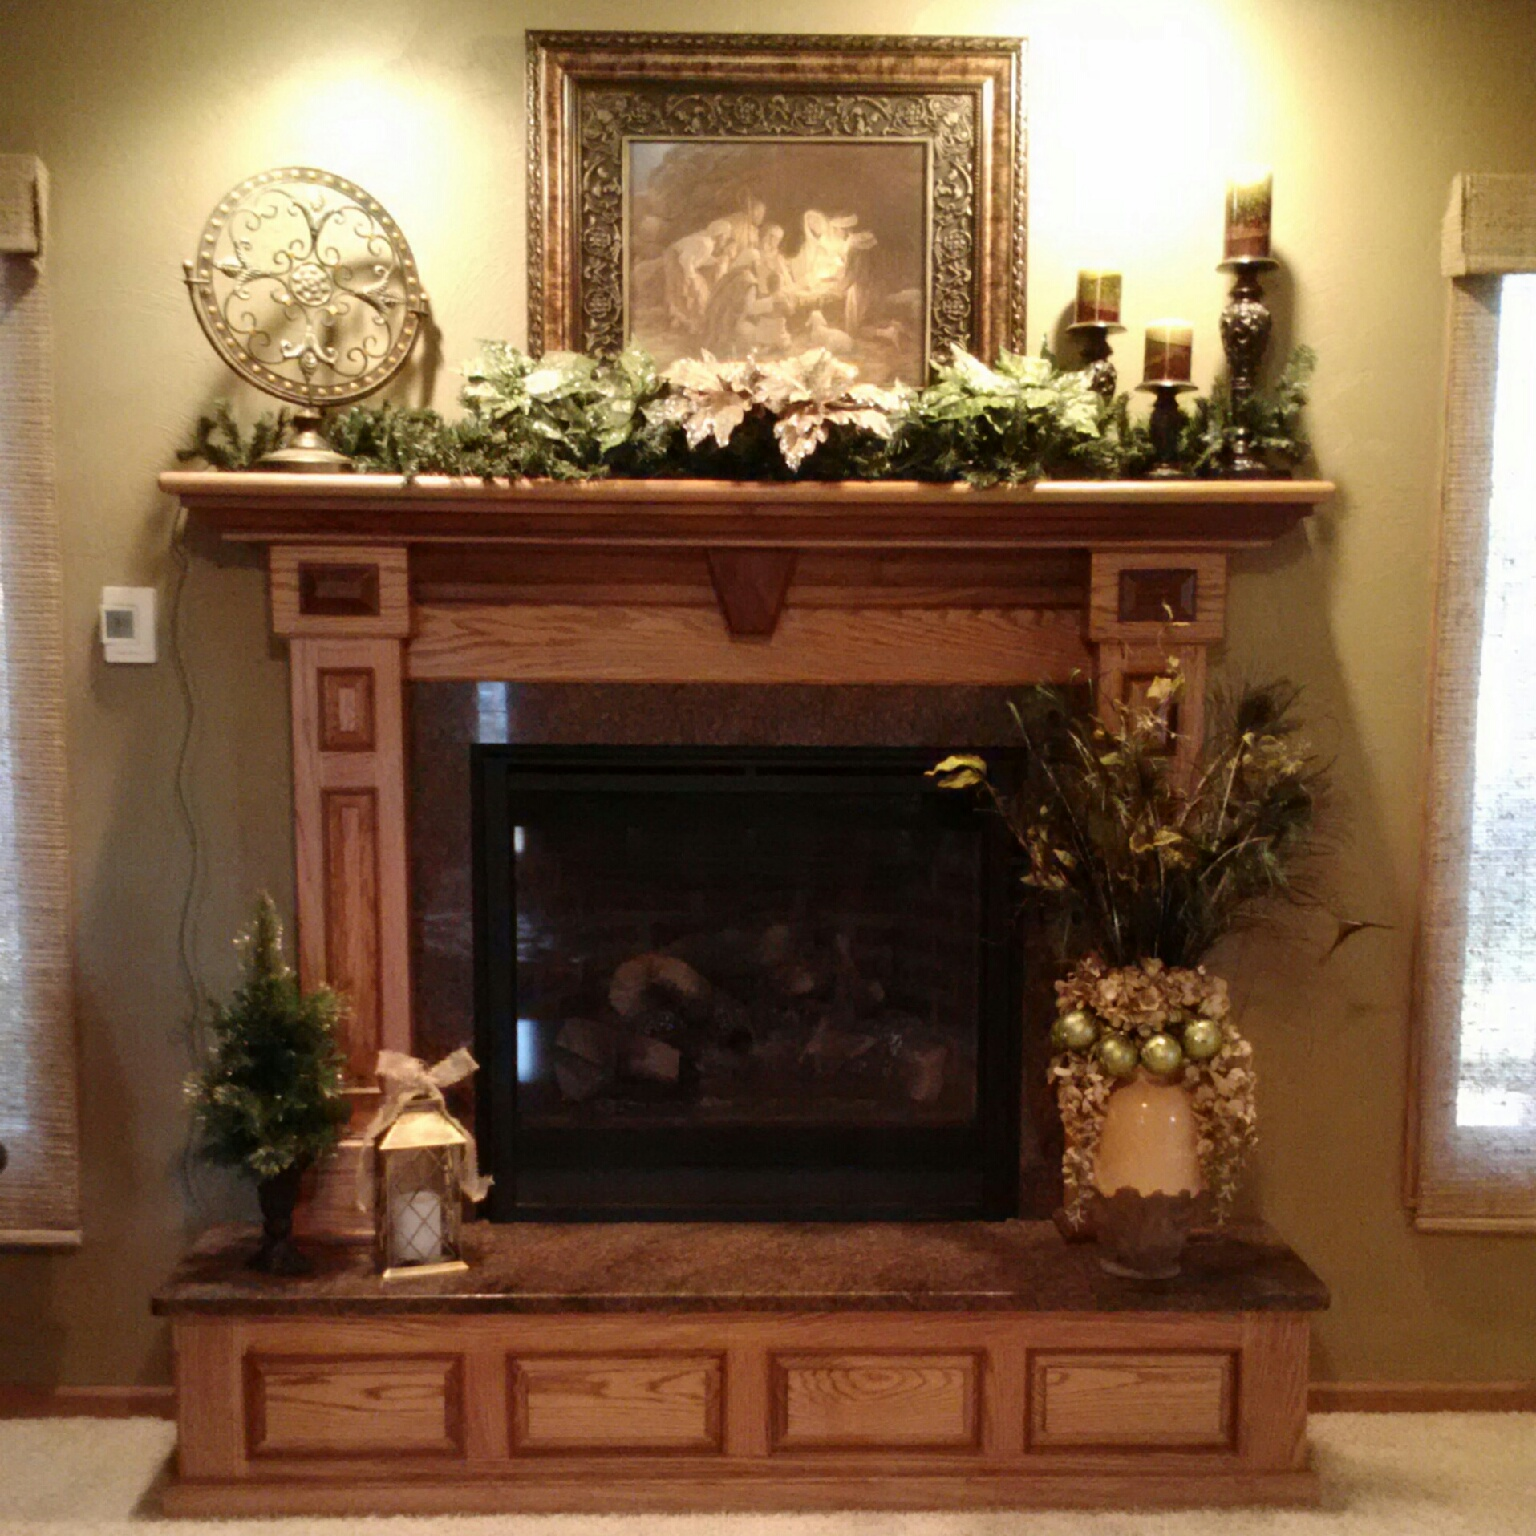 awesome Fireplace Mantel kits with flowers surround plus double windows